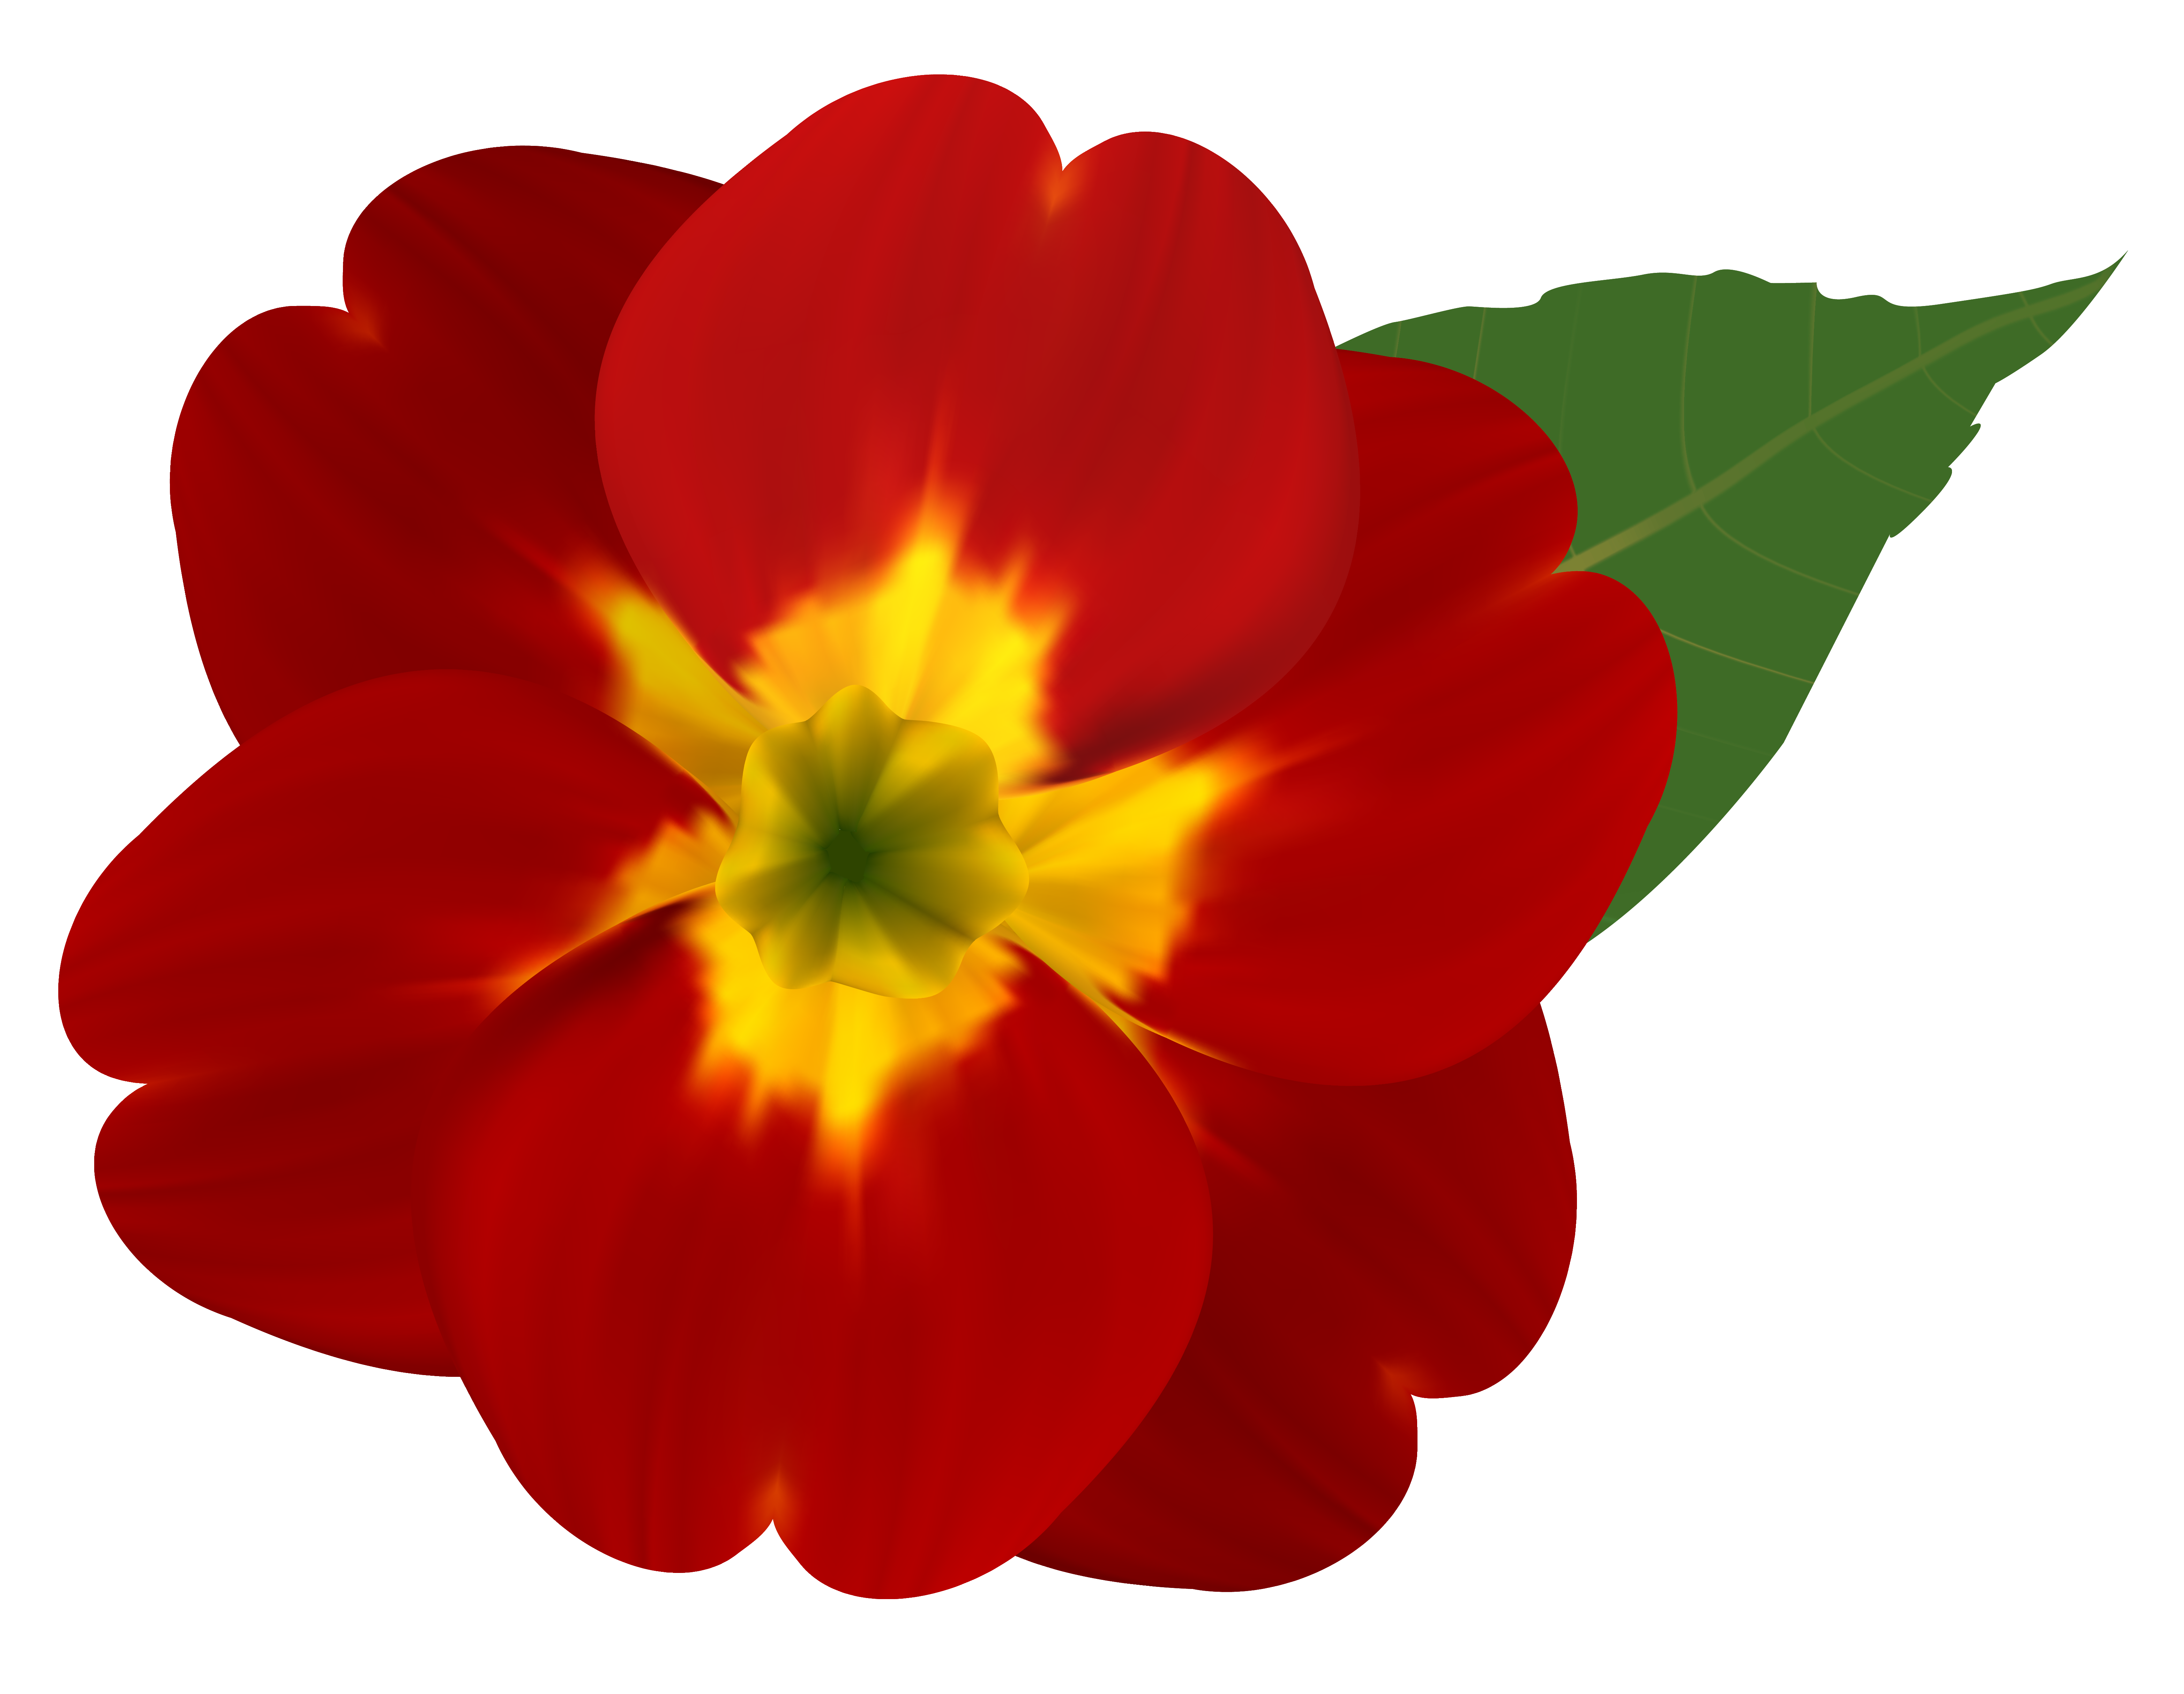 6260x4855 Red Flower Clipart Yellow Flower